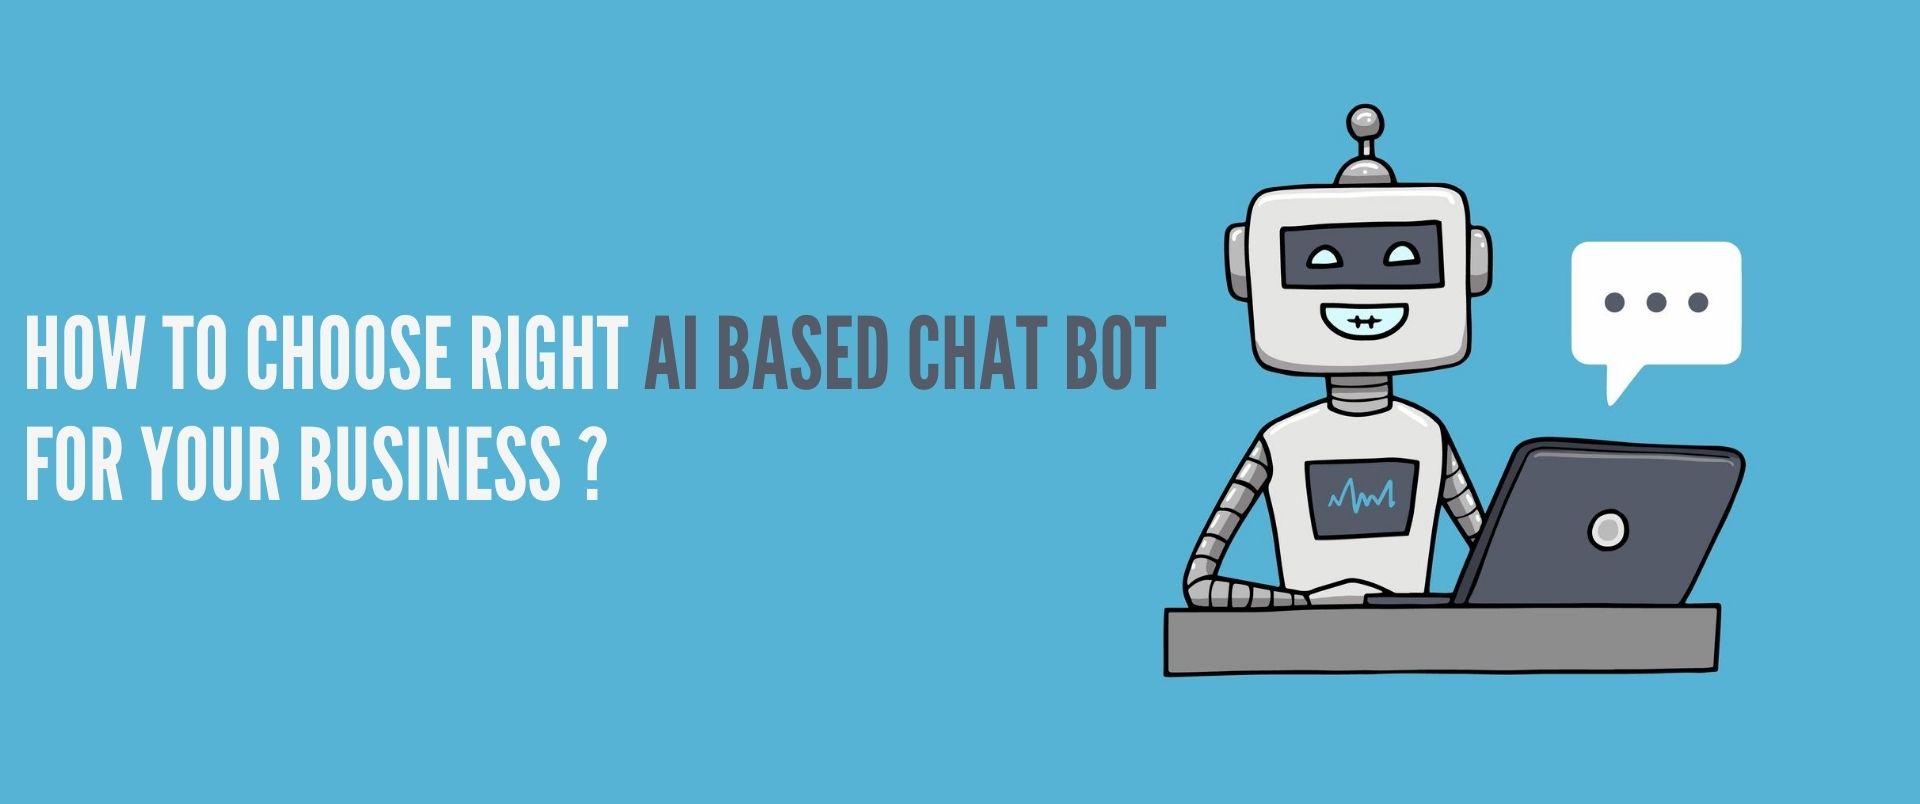 How to Choose the Right AI-based Chatbot for Your Business?